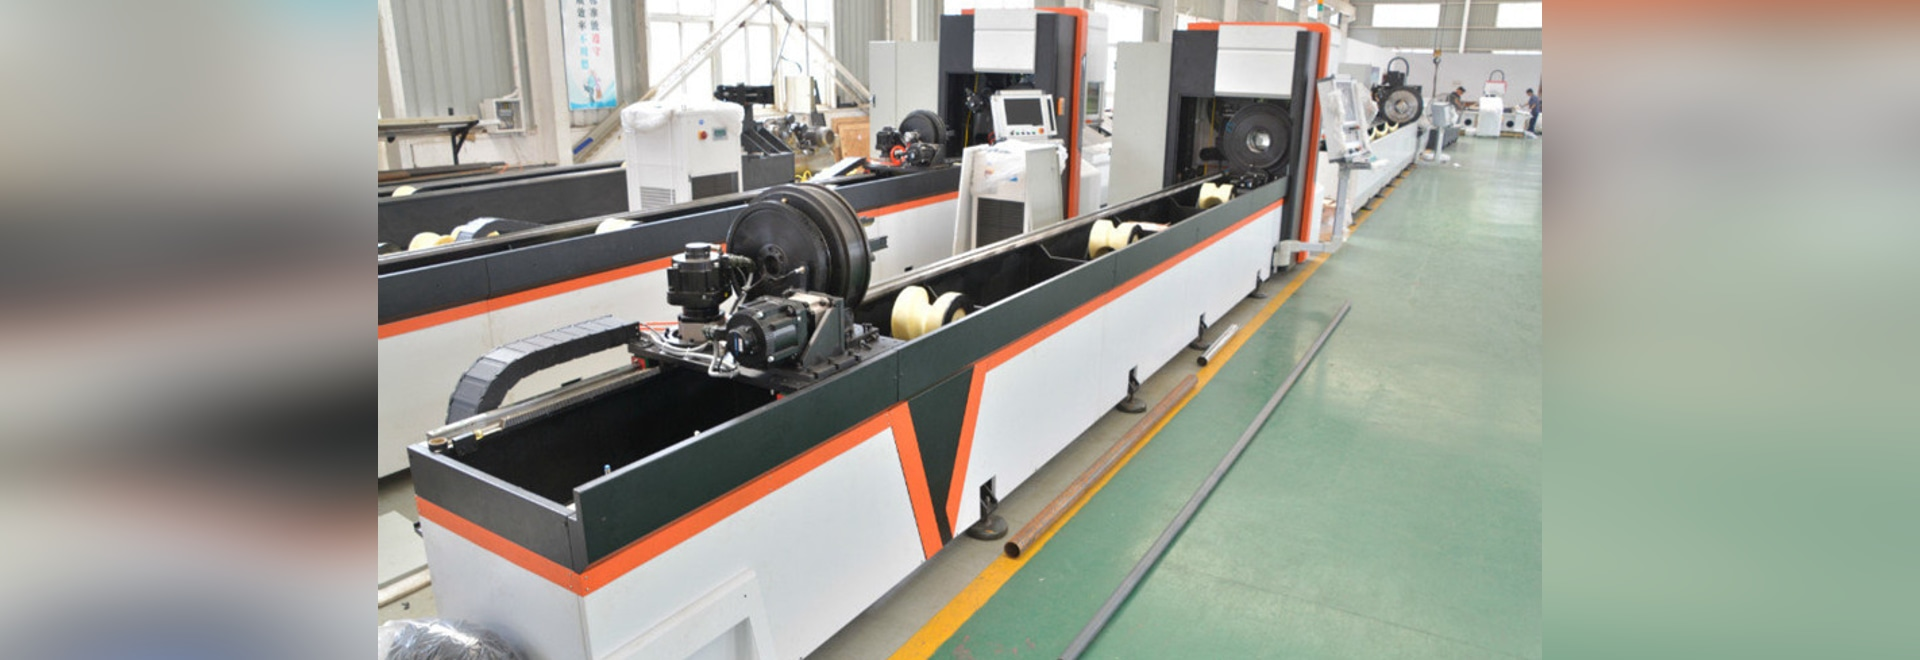 Mass production of automatic bundle loader fiber laser metal pipe / tube cutting machine by Golden & Mass production of automatic bundle loader fiber laser metal pipe ...